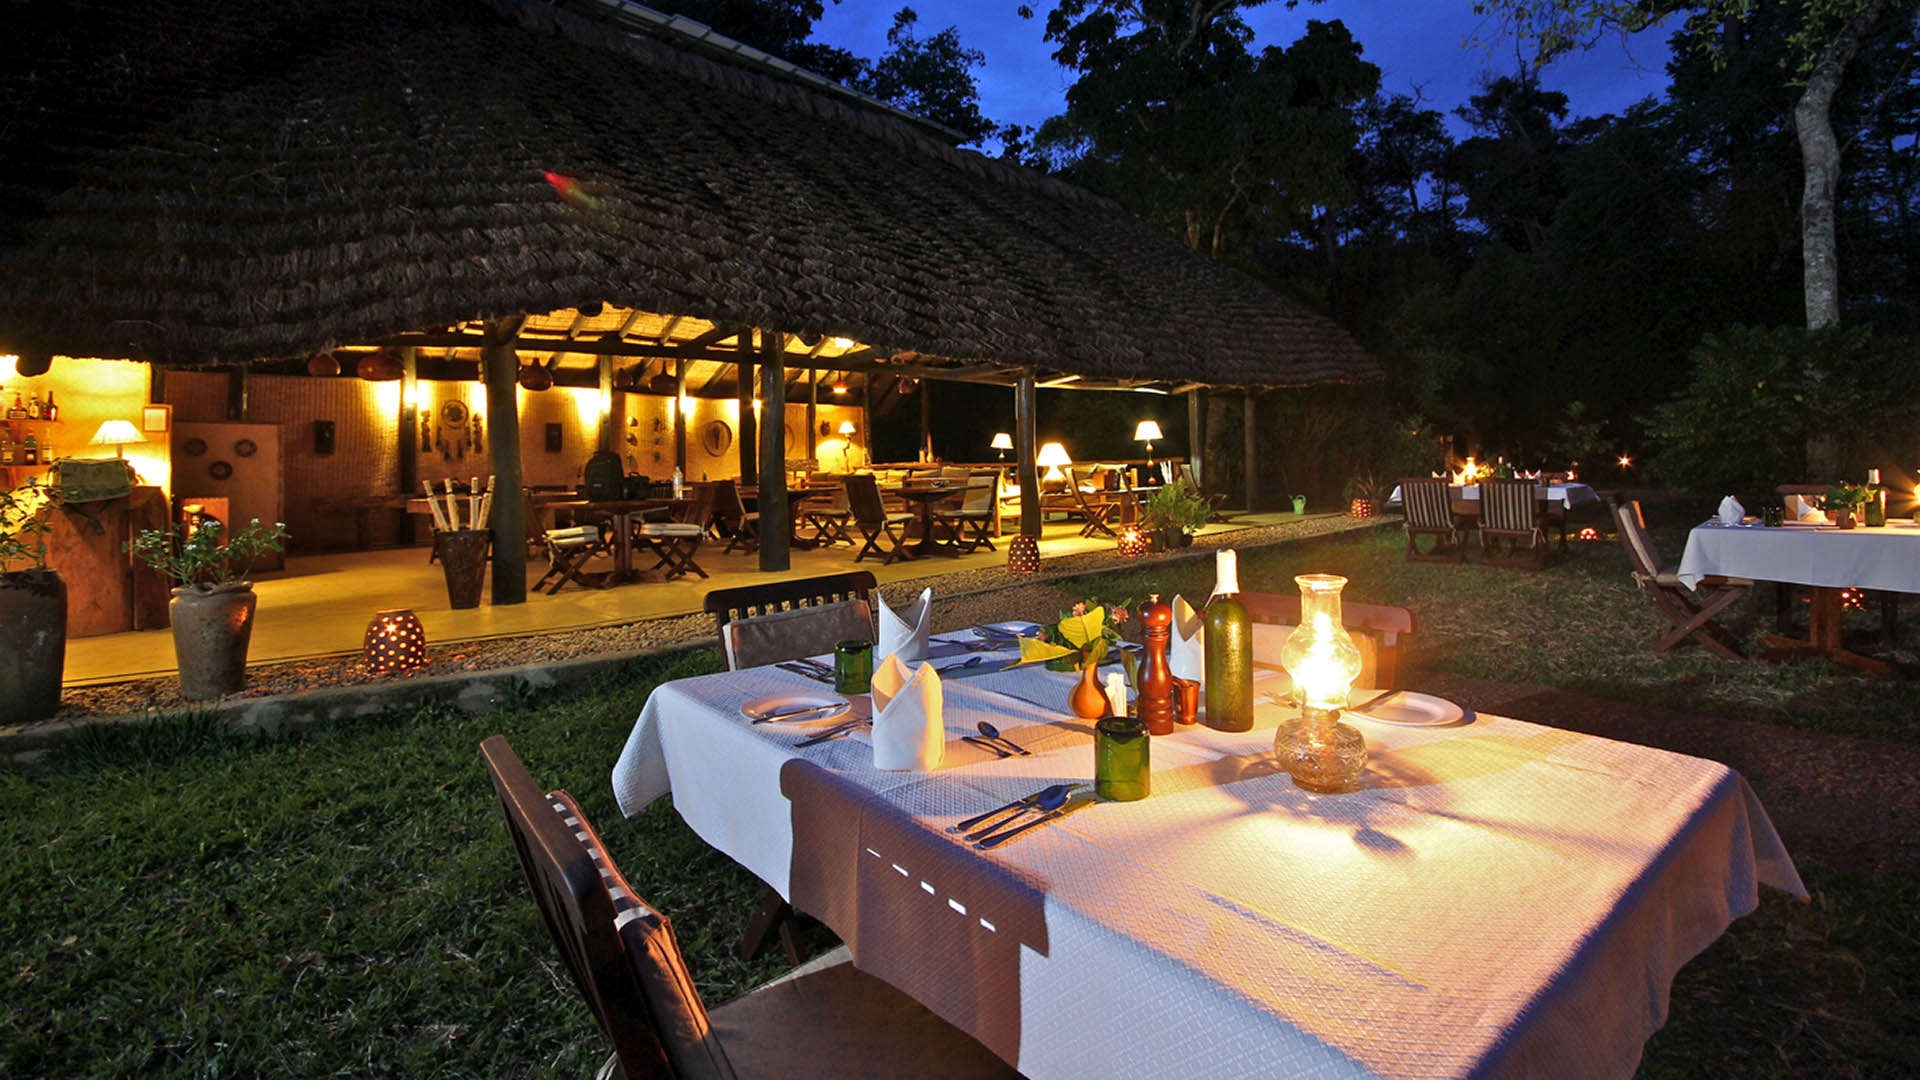 ishasha-wilderness-camp-africa-accommodations-uganda-maasai-wanderings-safari